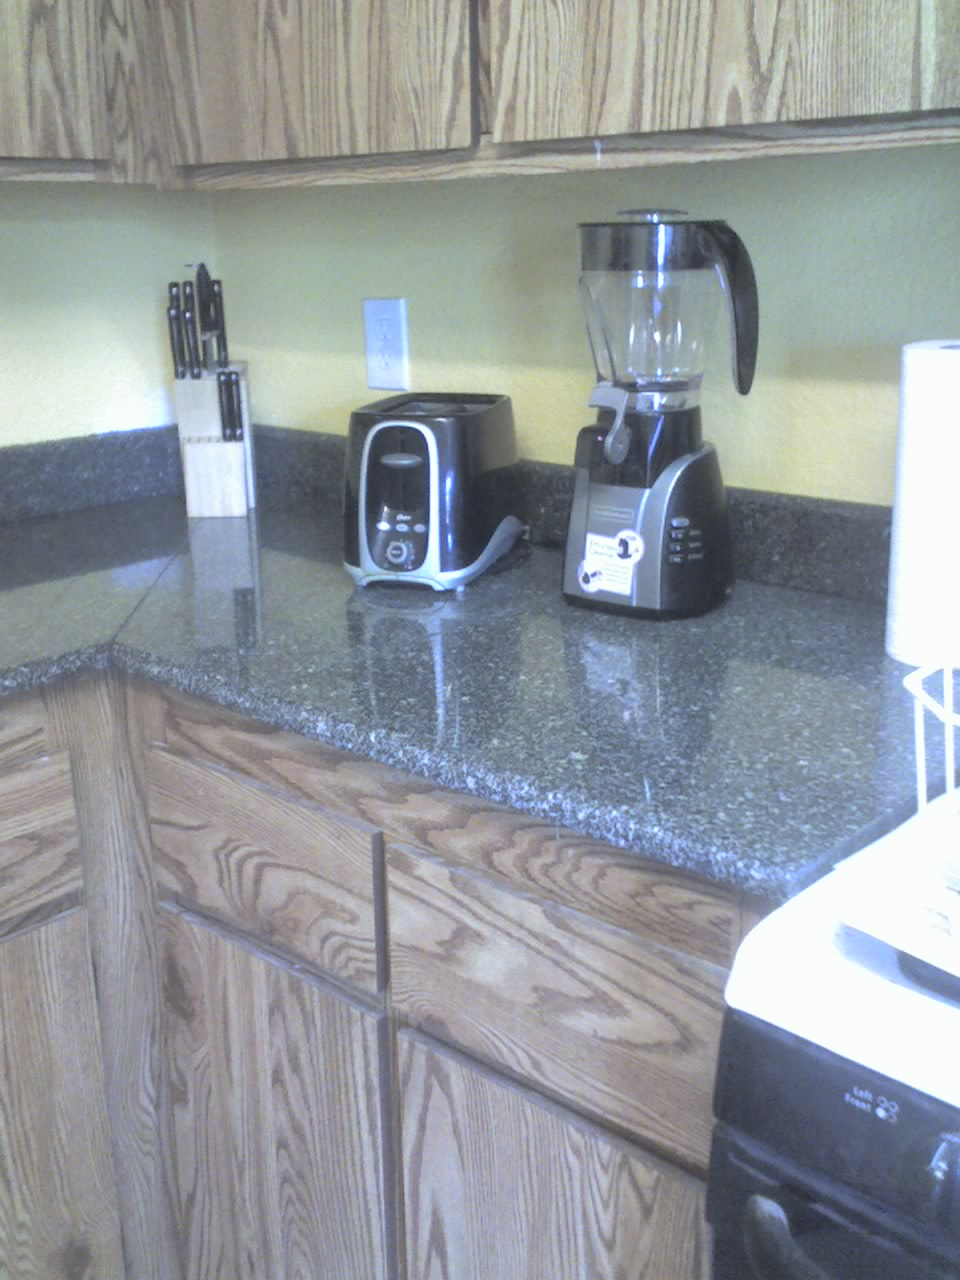 Granite Countertops cabinets appliances